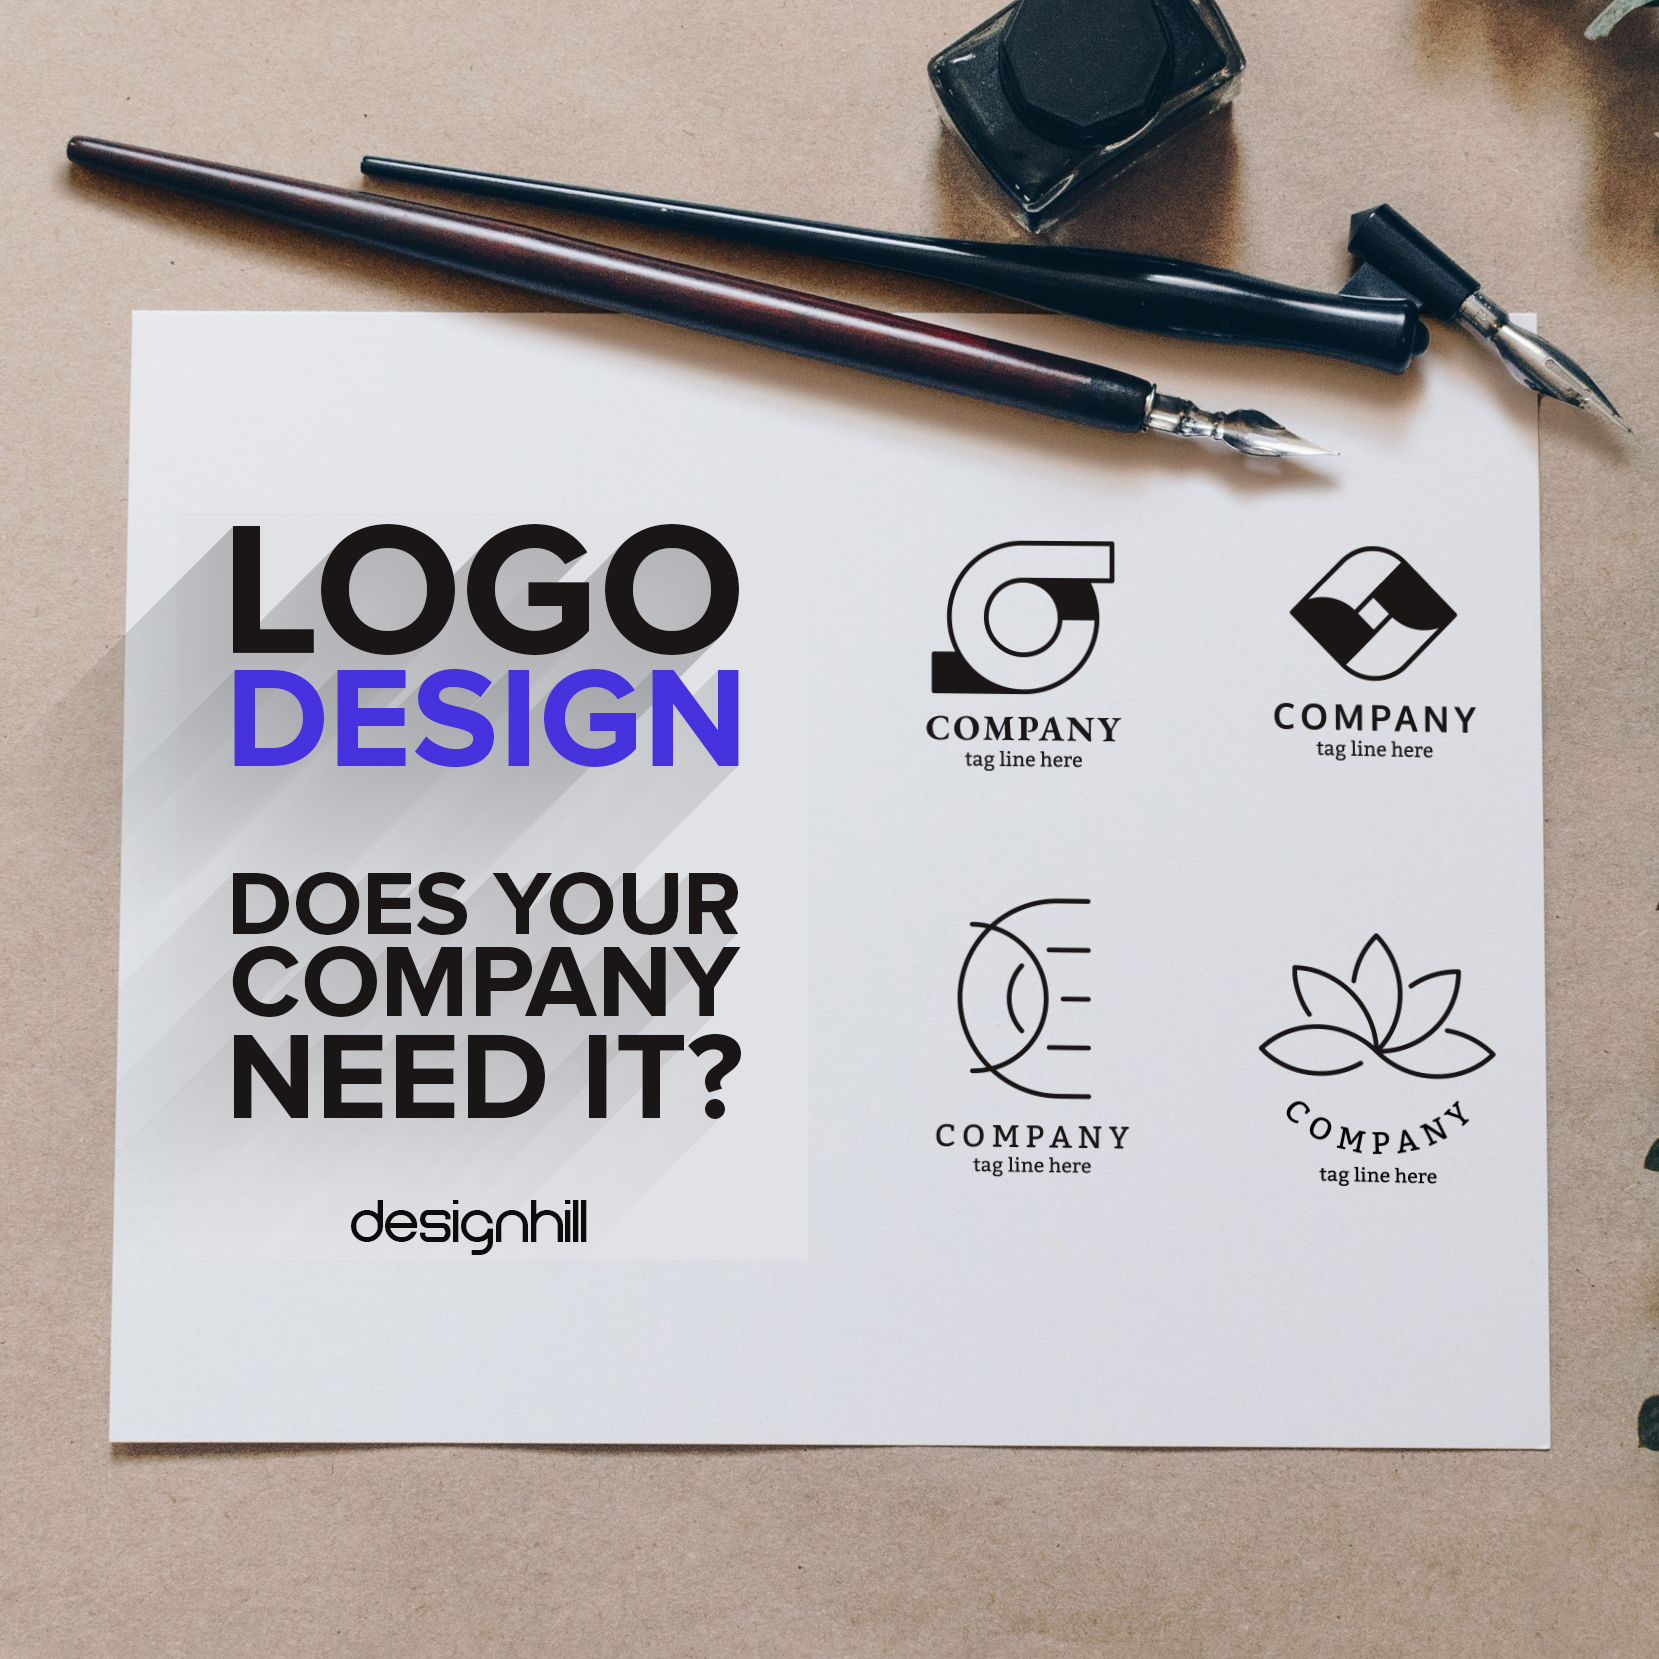 custom logo design business logos online designhill custom logo design business logos